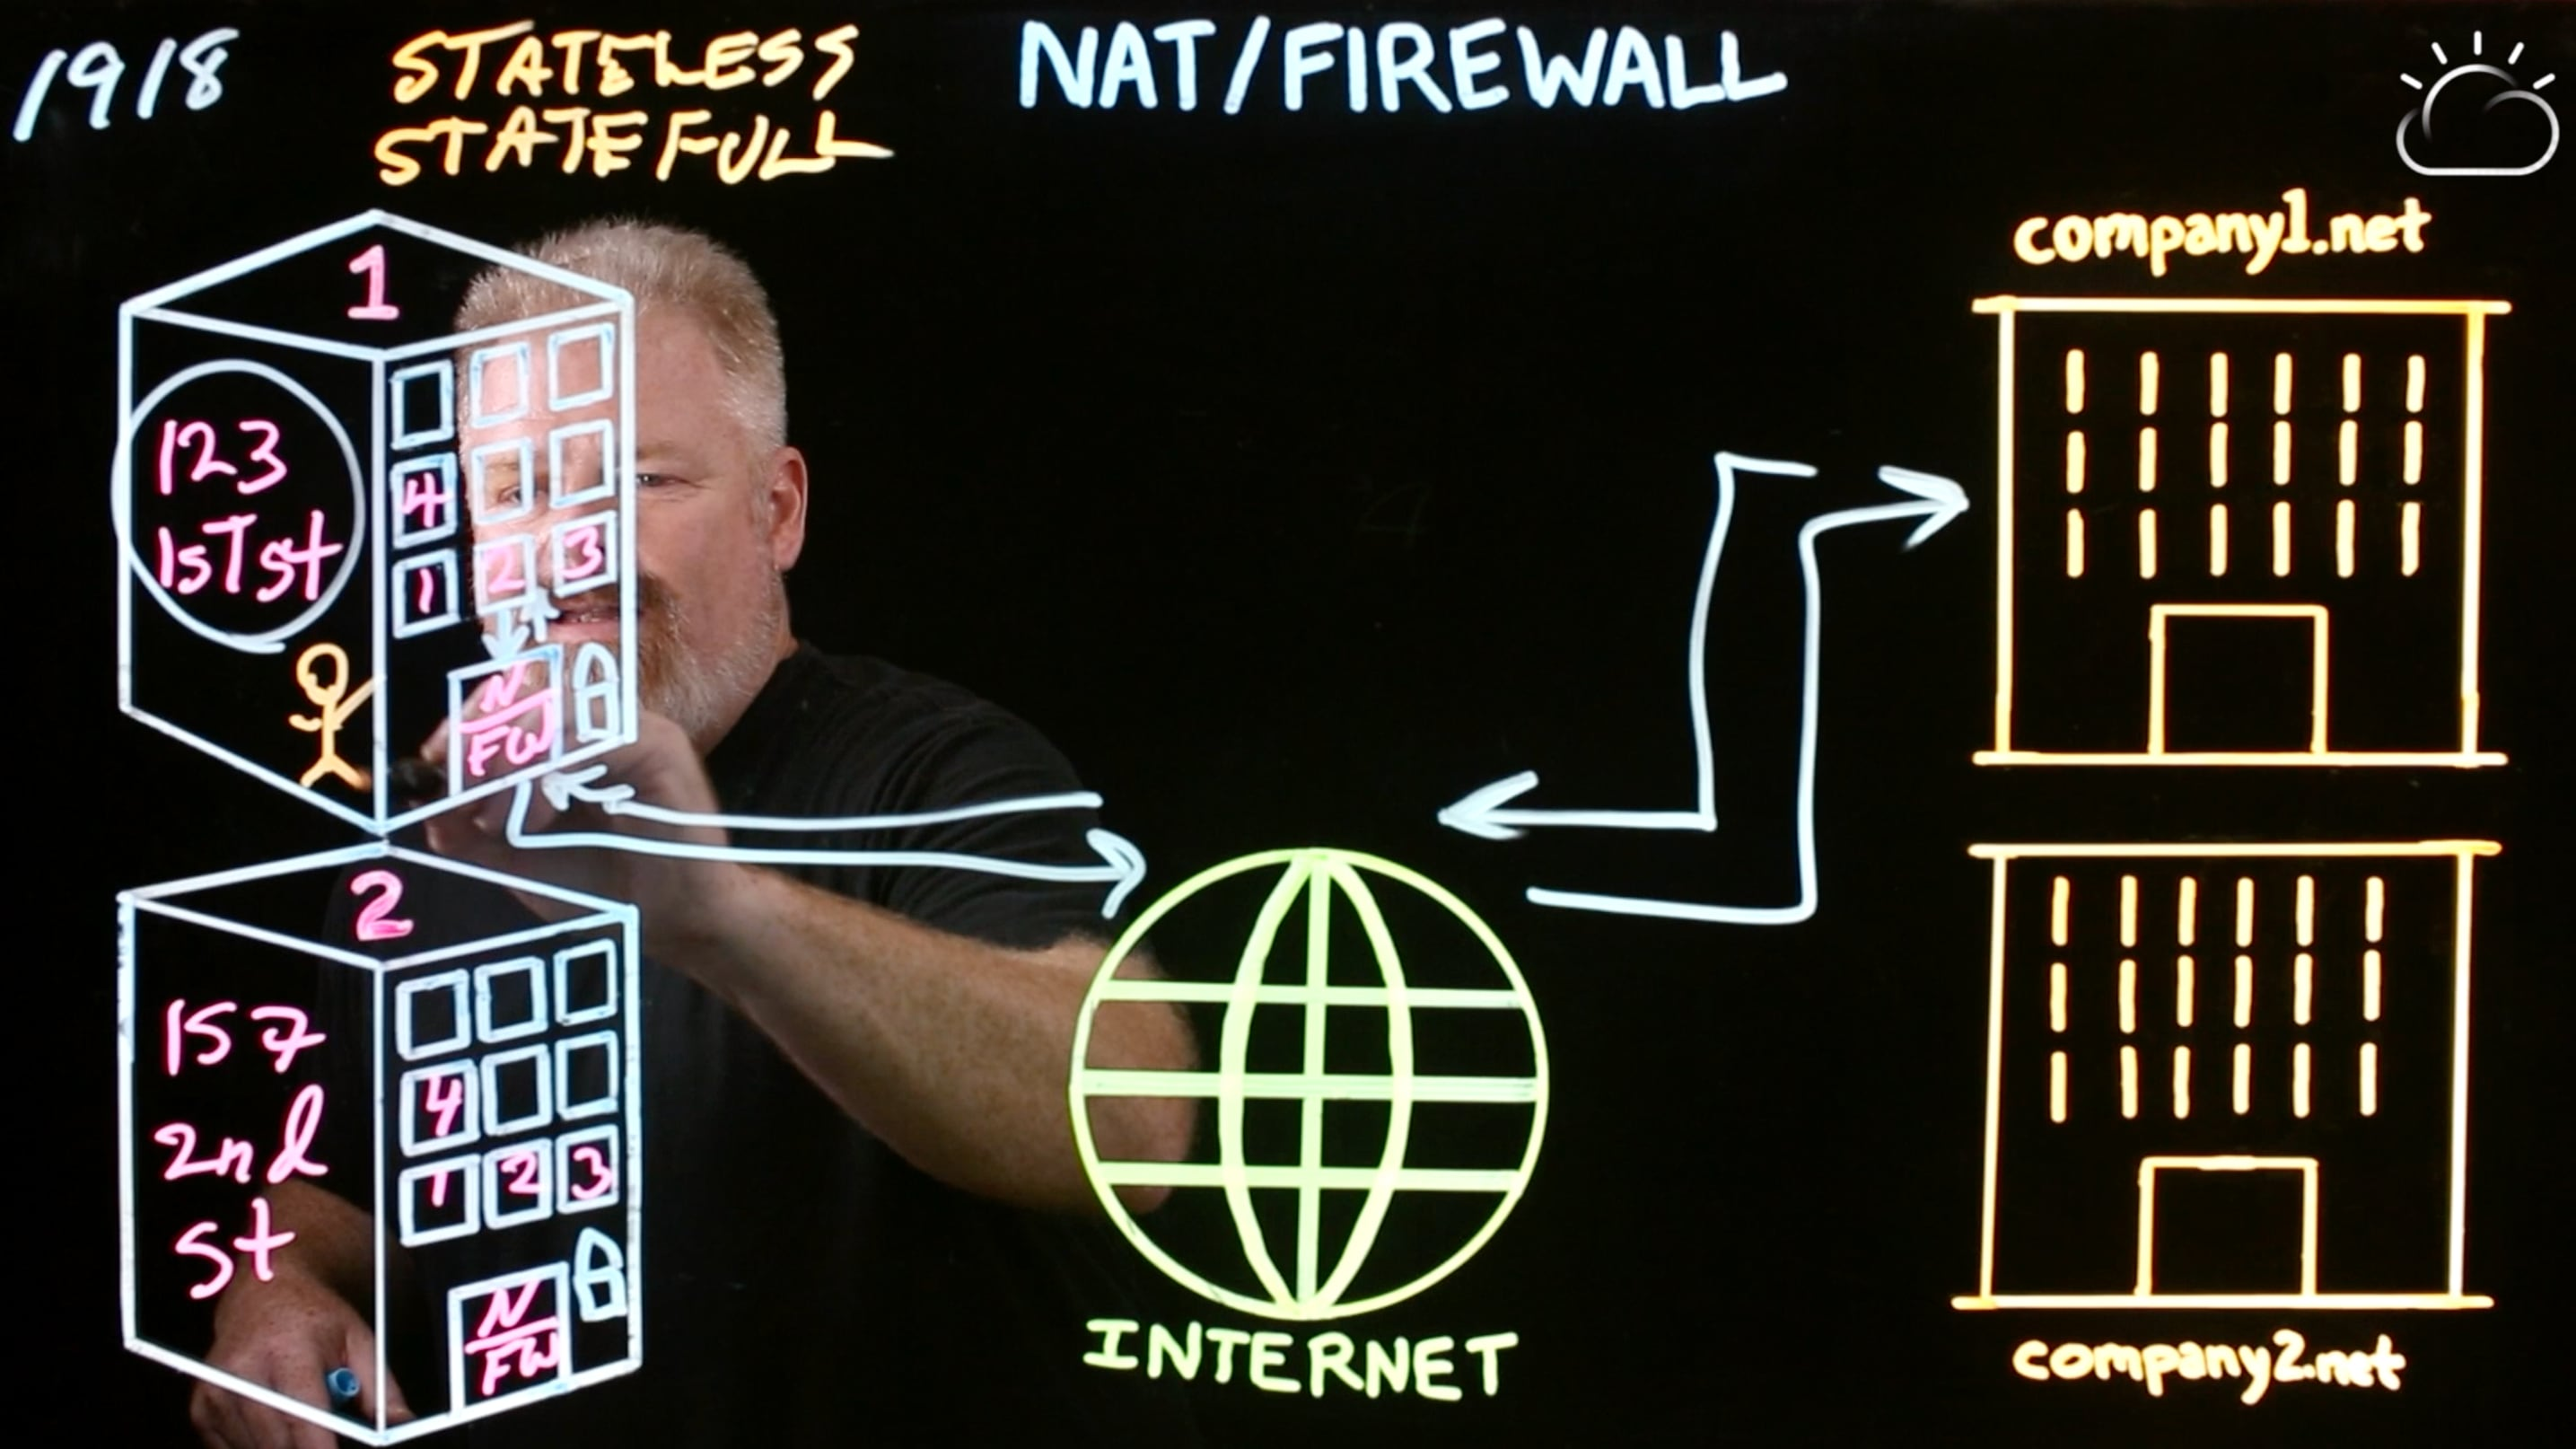 Stateful firewall is like a security guard